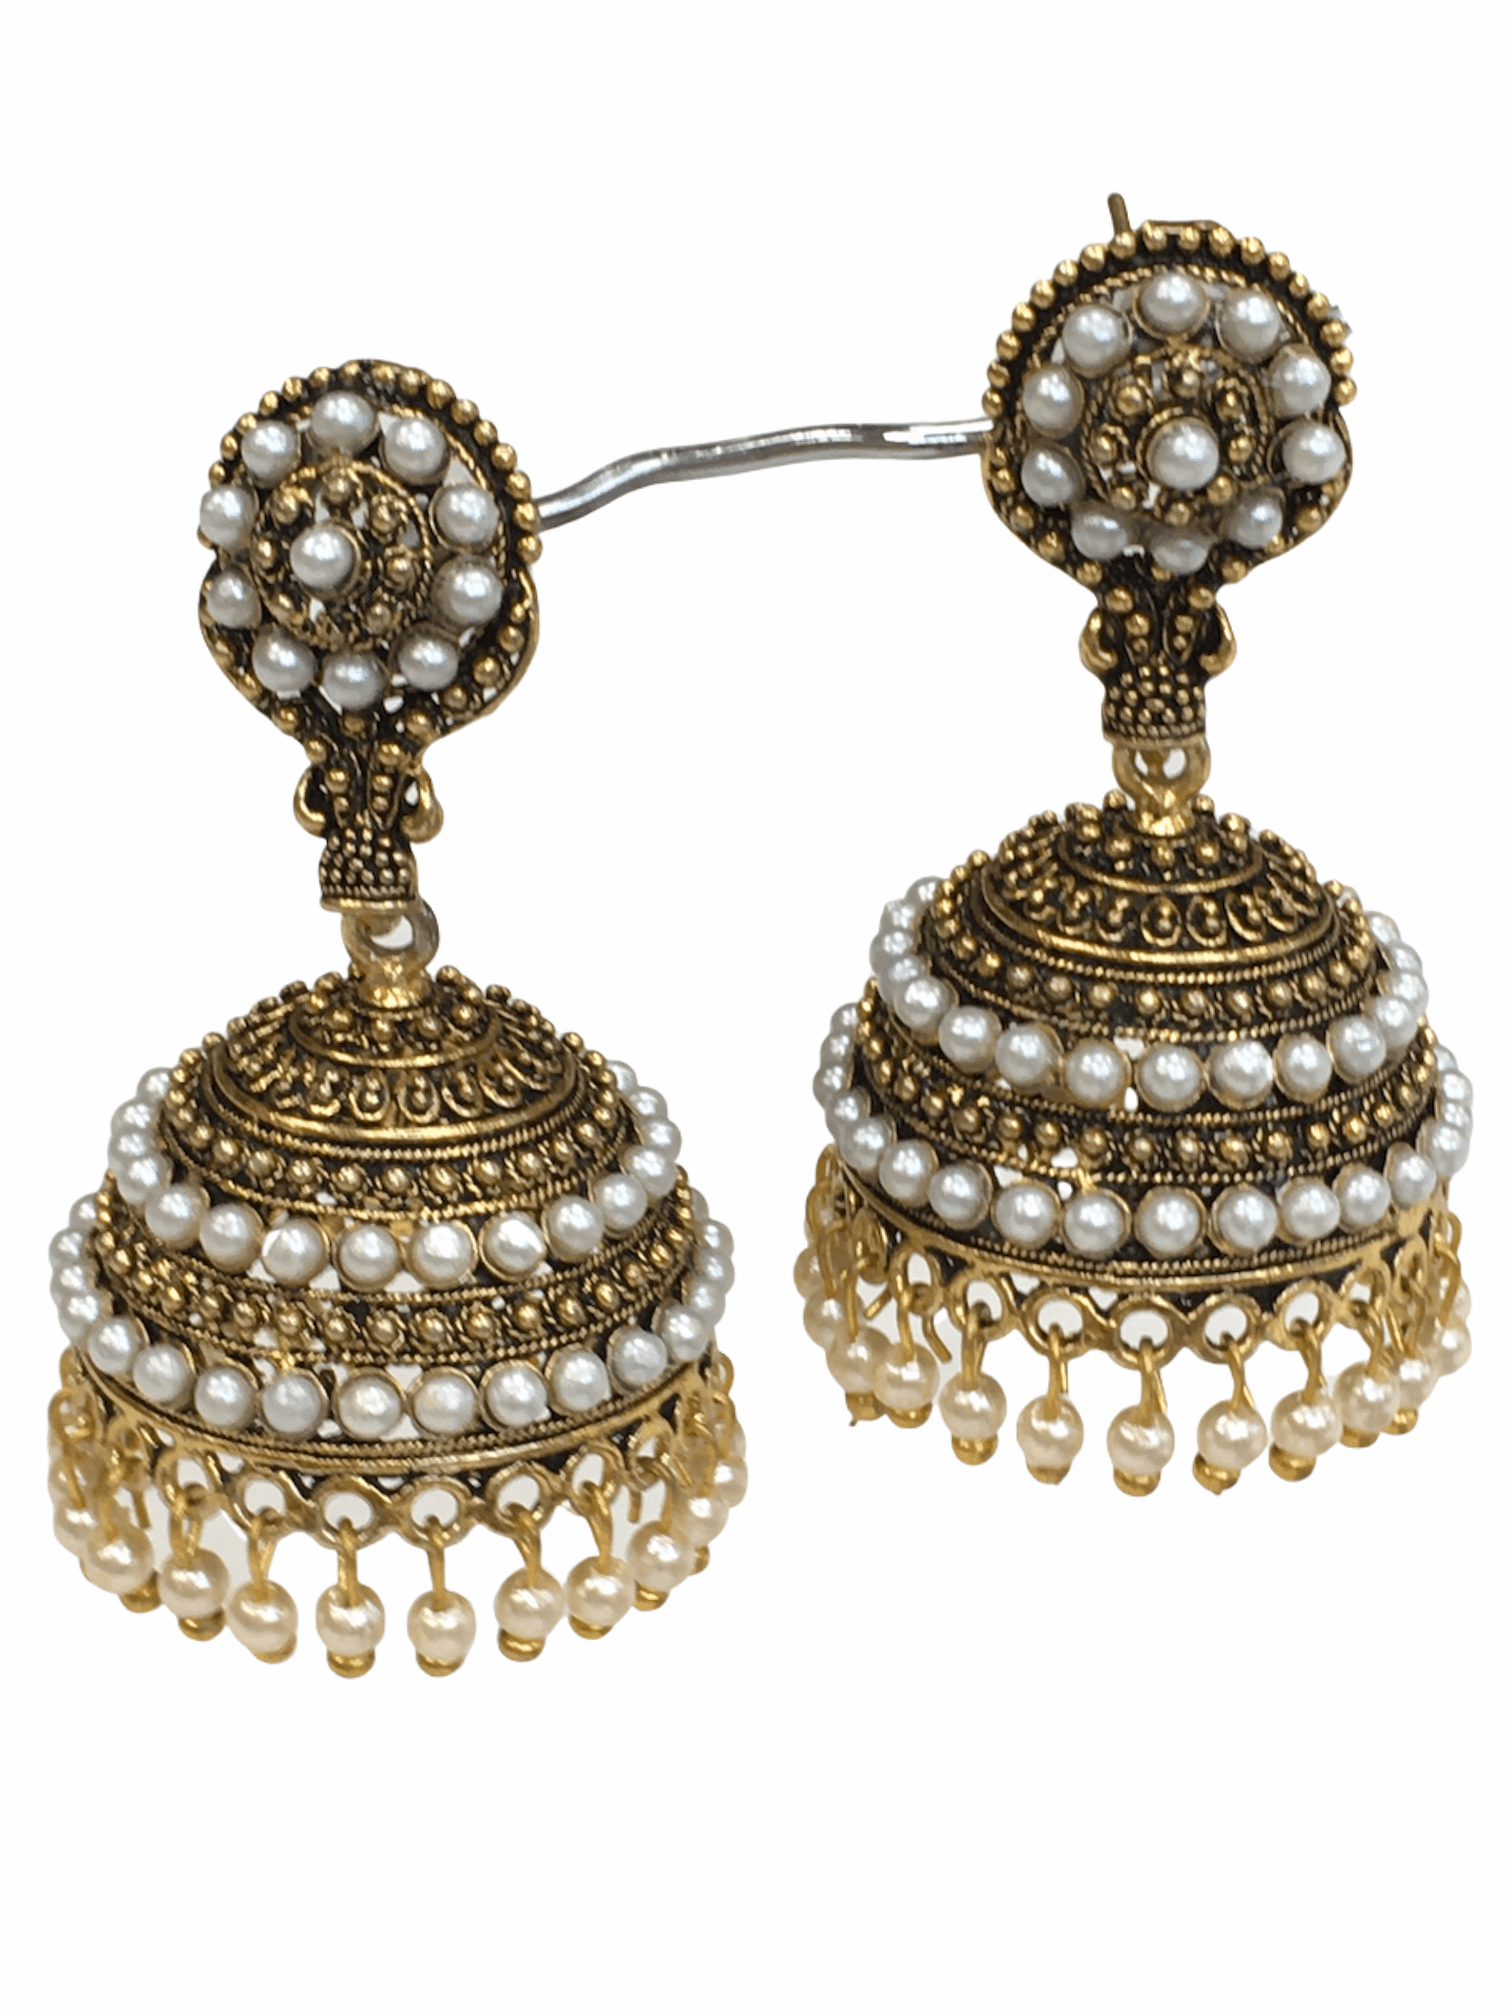 Antique Gold finish Zhumki Style earrings - SHR2006 Kp0320 - Prachy Creations